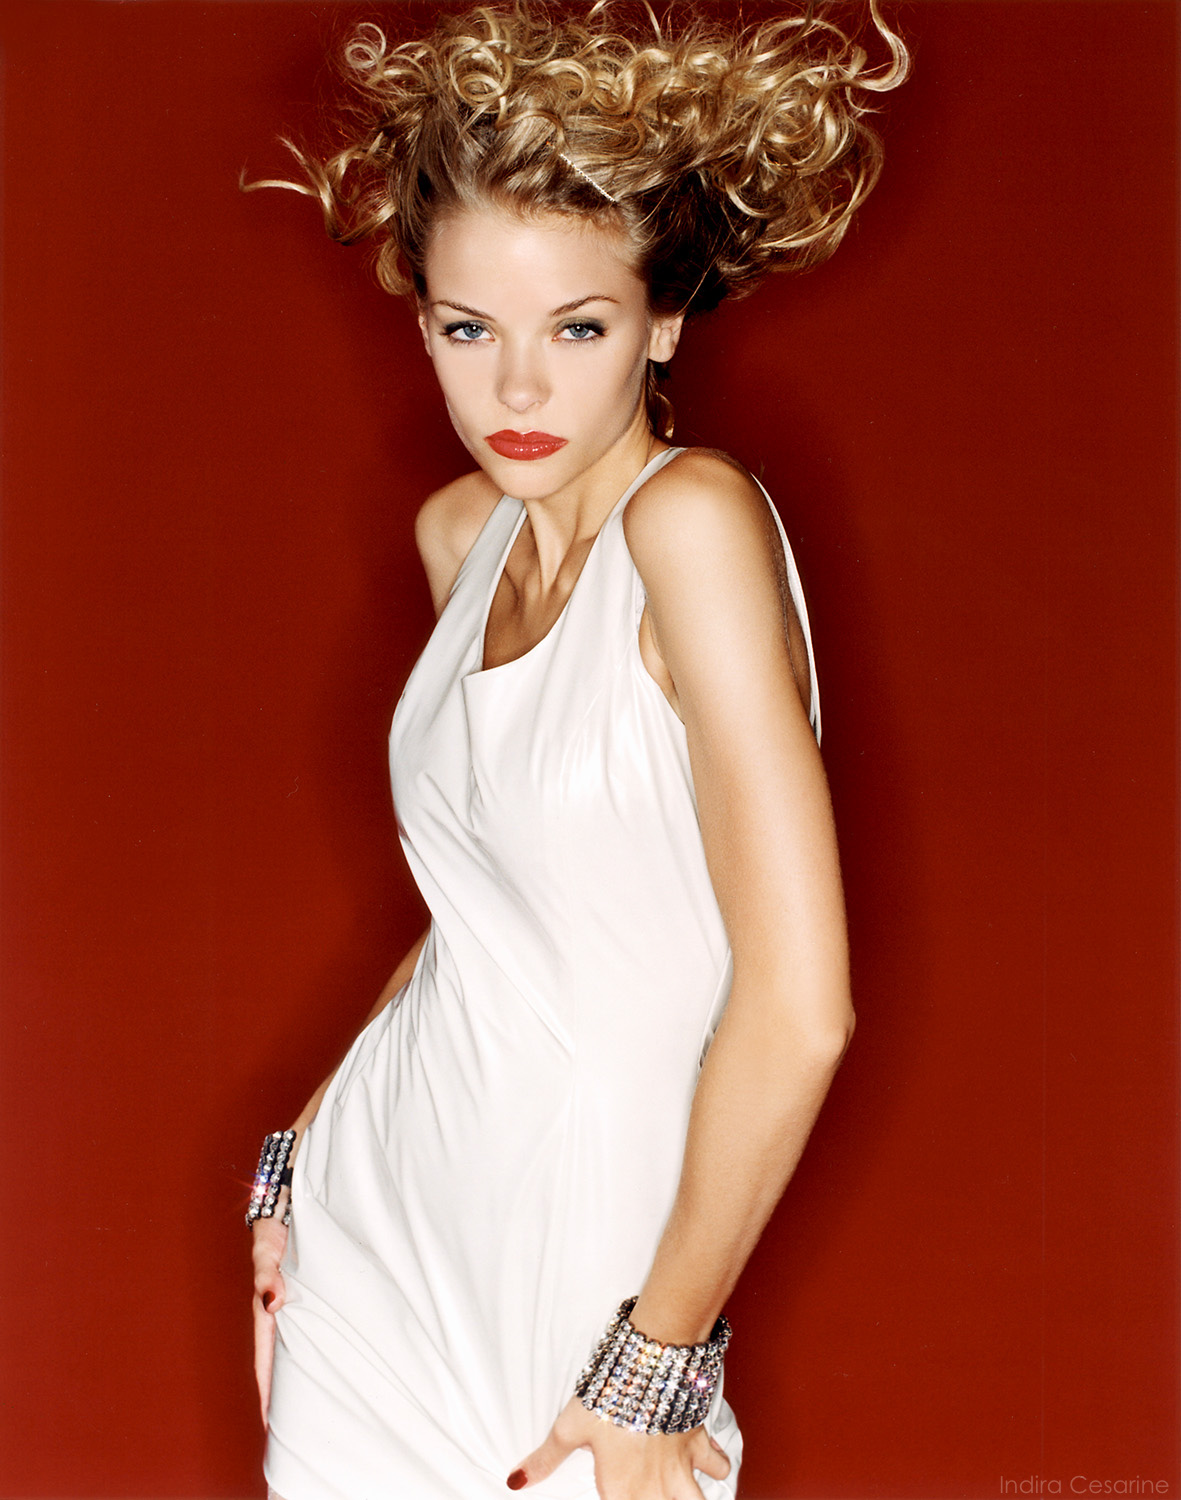 JAIME-KING-Photography-by-Indira-Cesarine-004.jpg